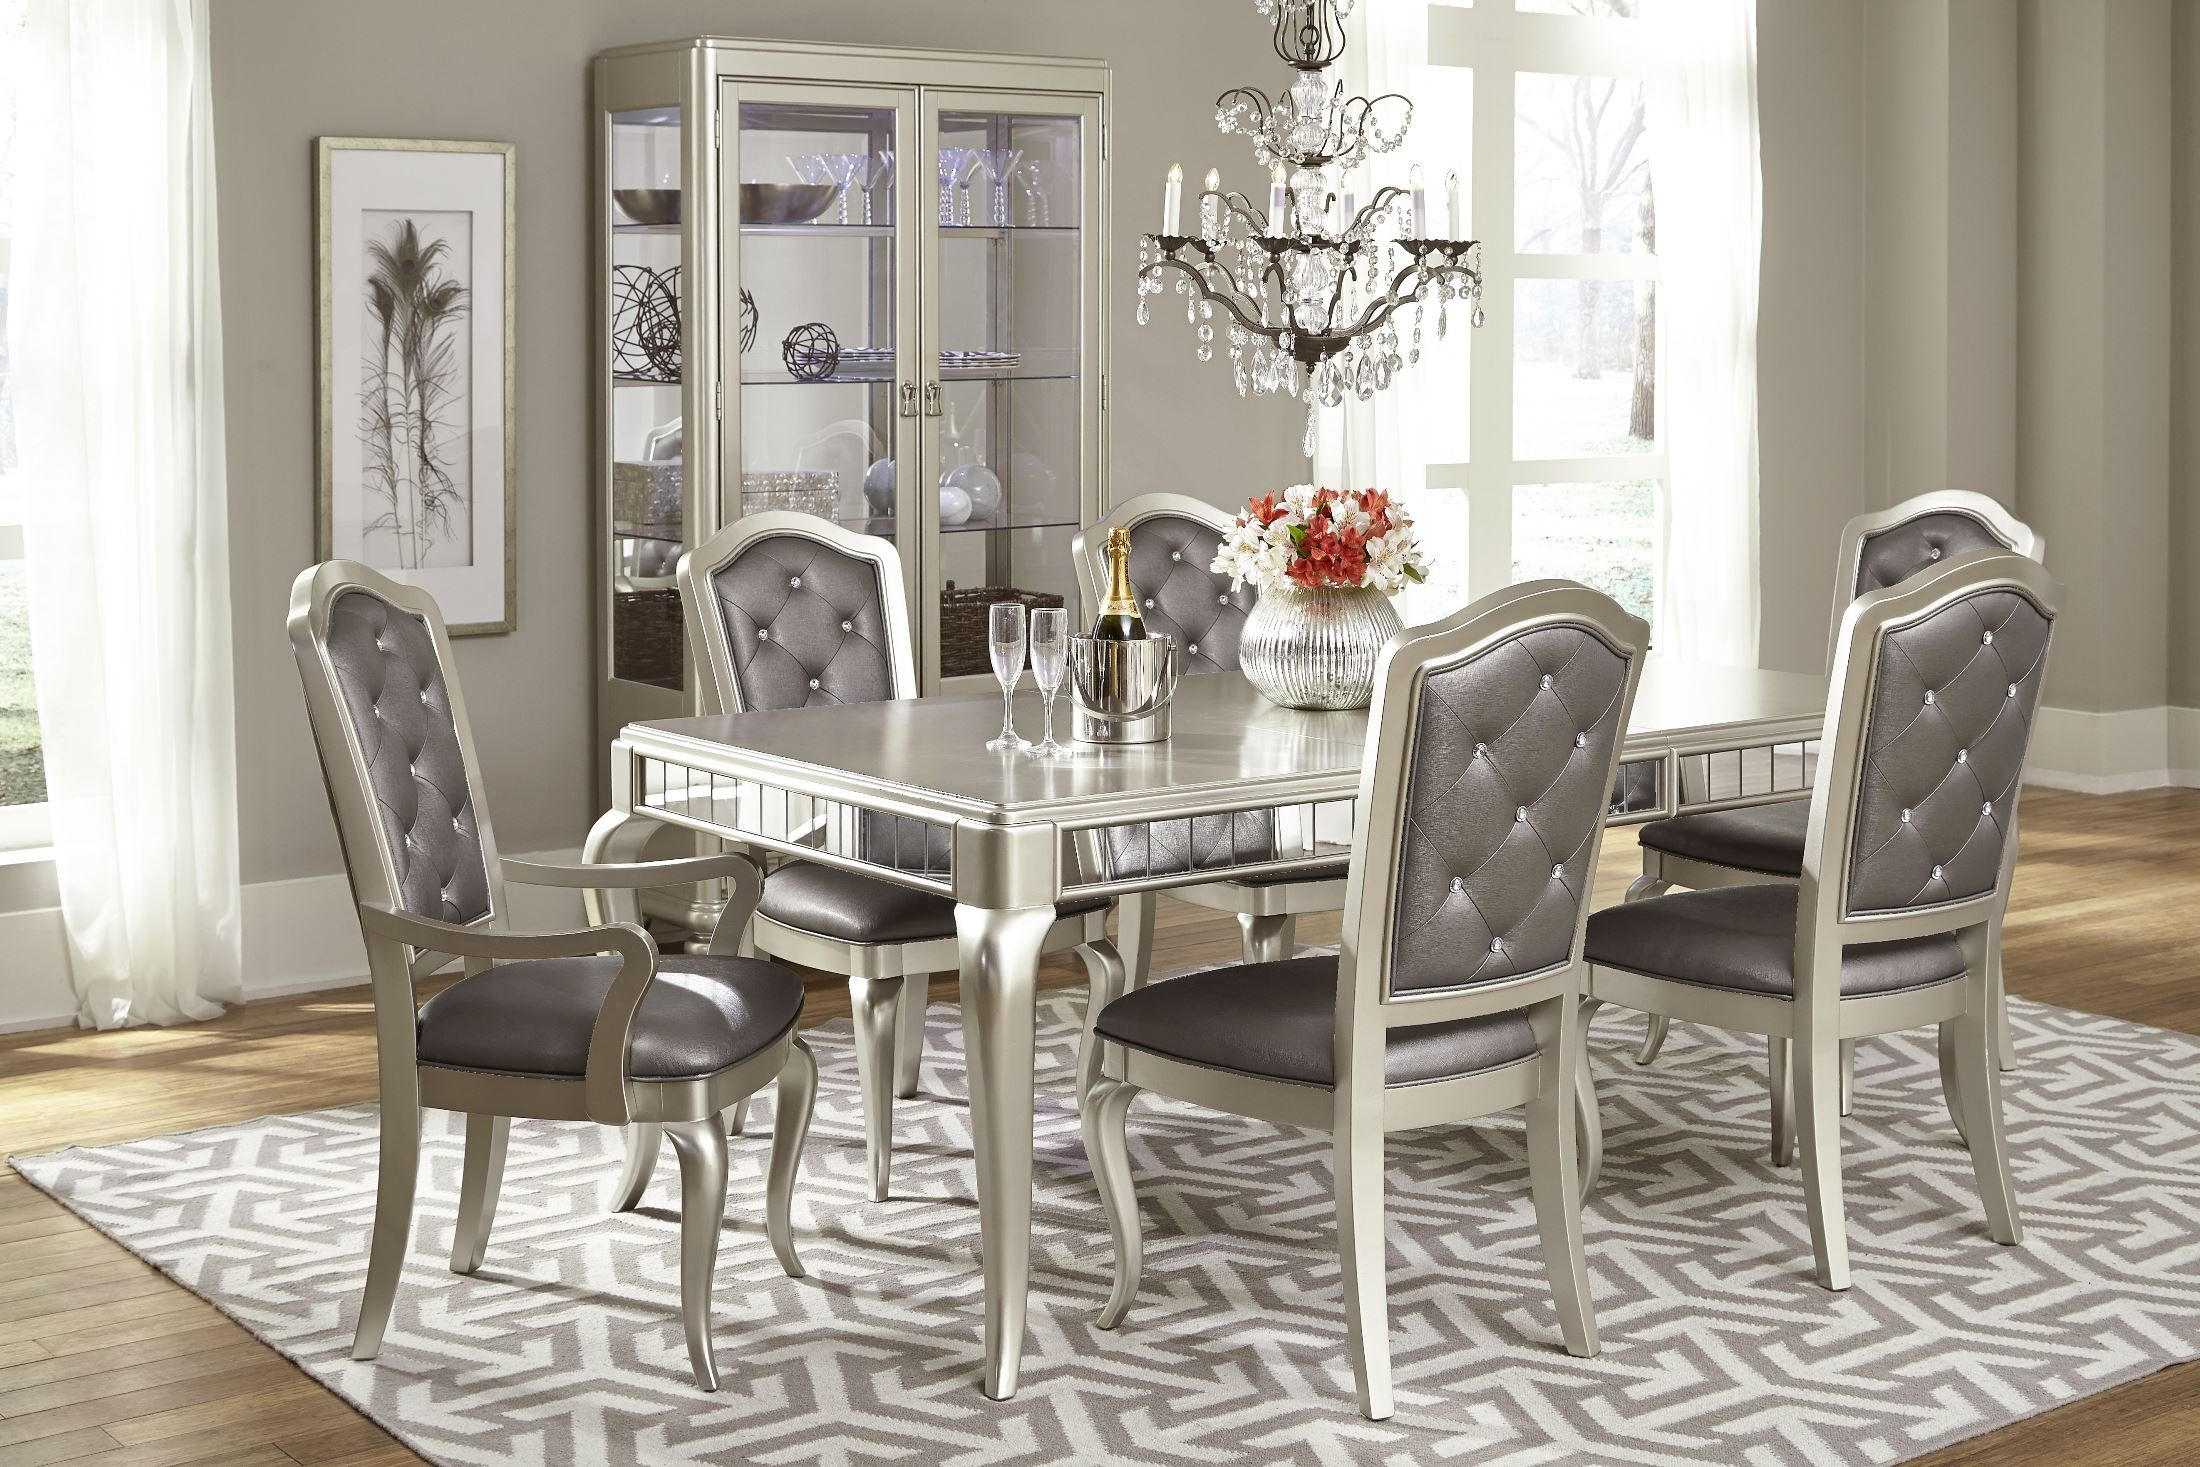 dining chairs sets furniture size set table rose white ashley room in full black formal arranging britannia benchashley modern home of